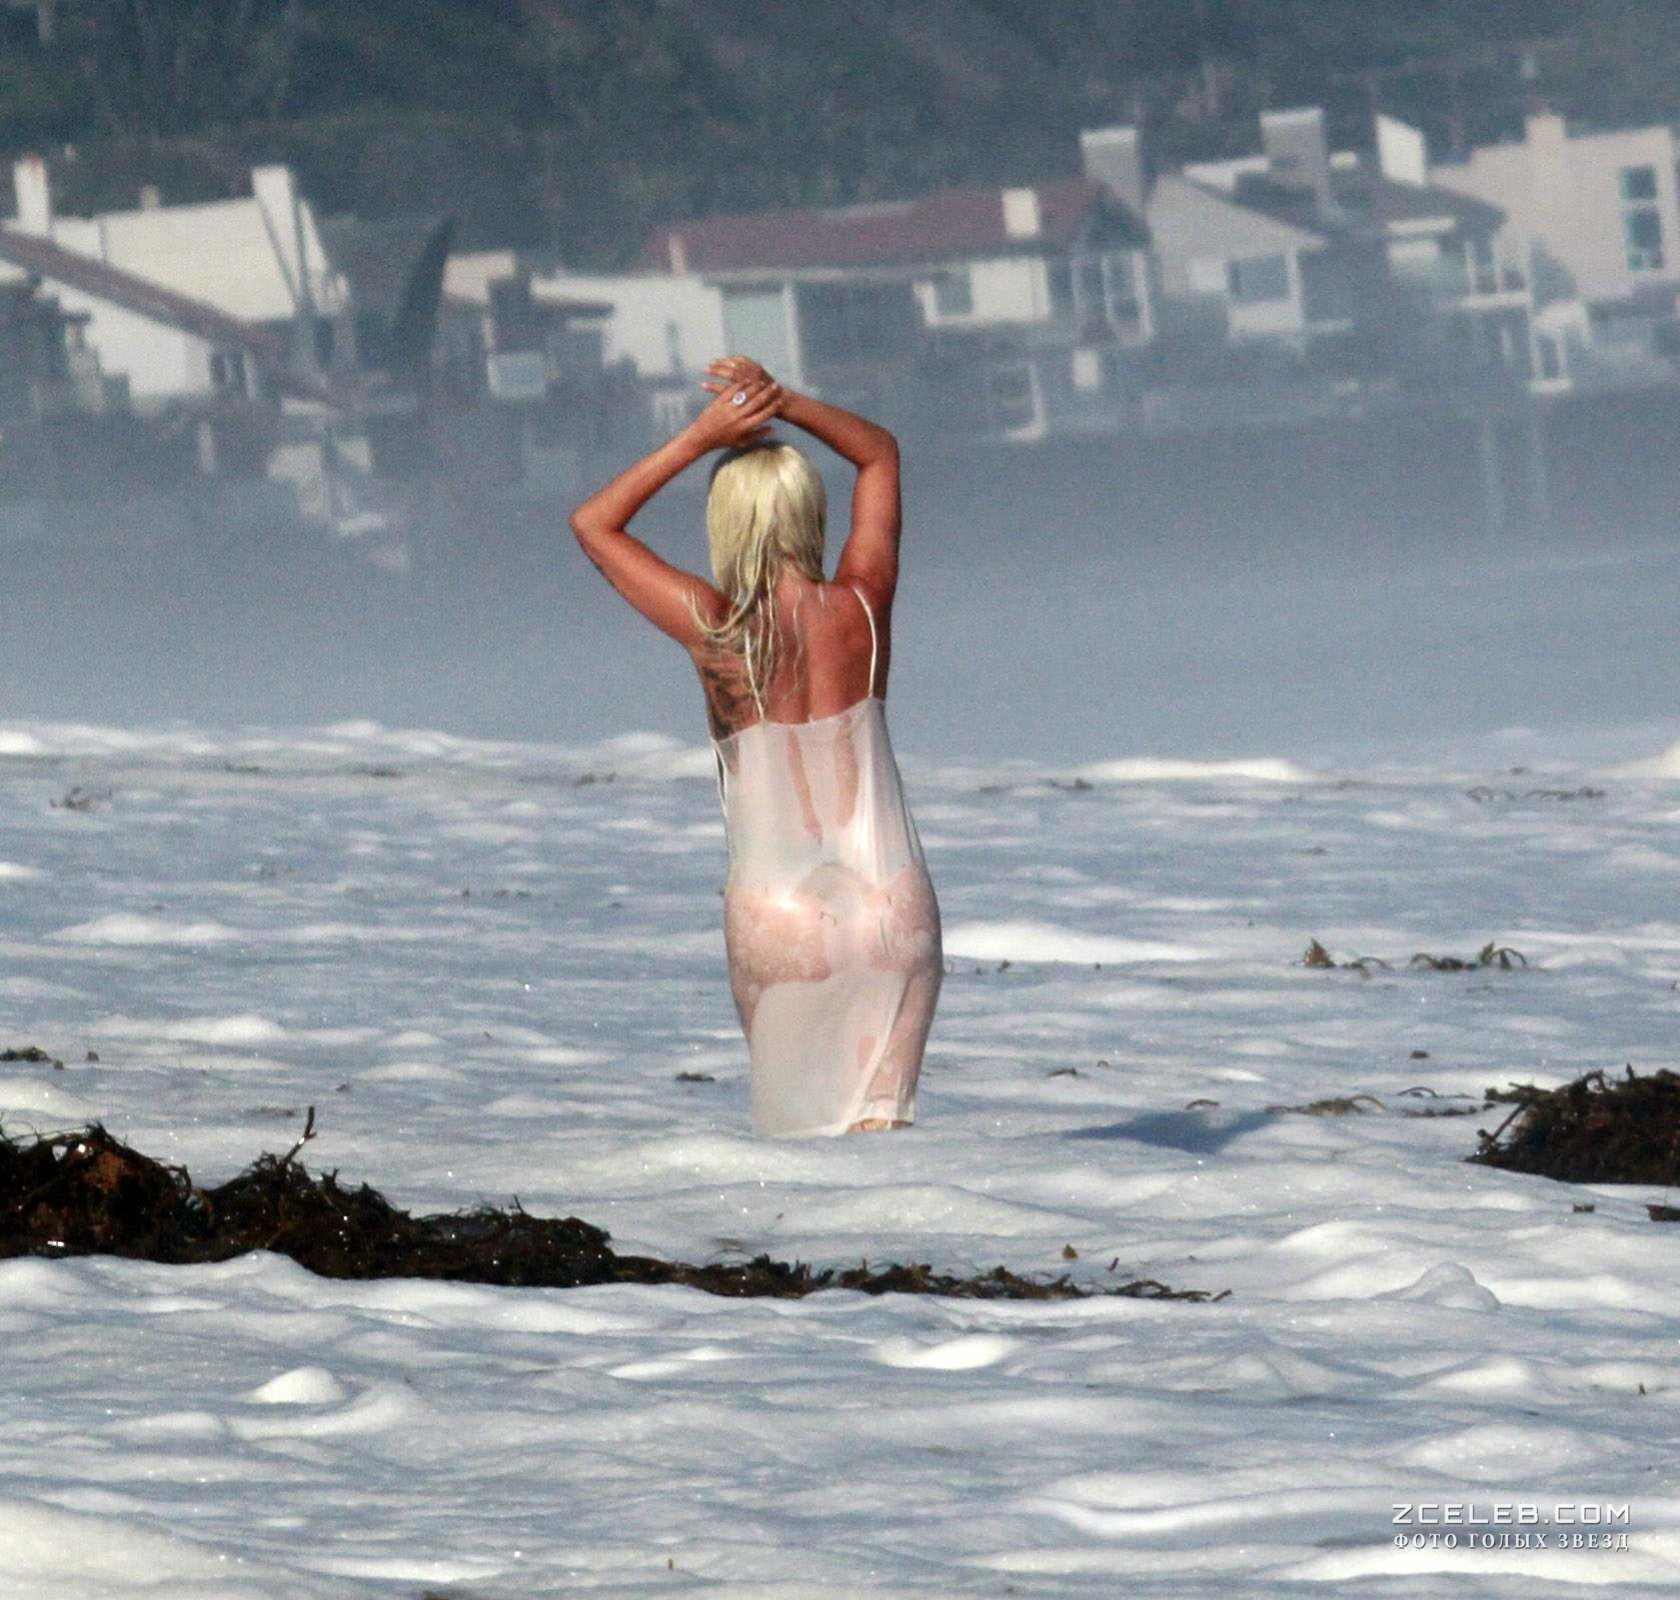 Lady gaga at a nude beach